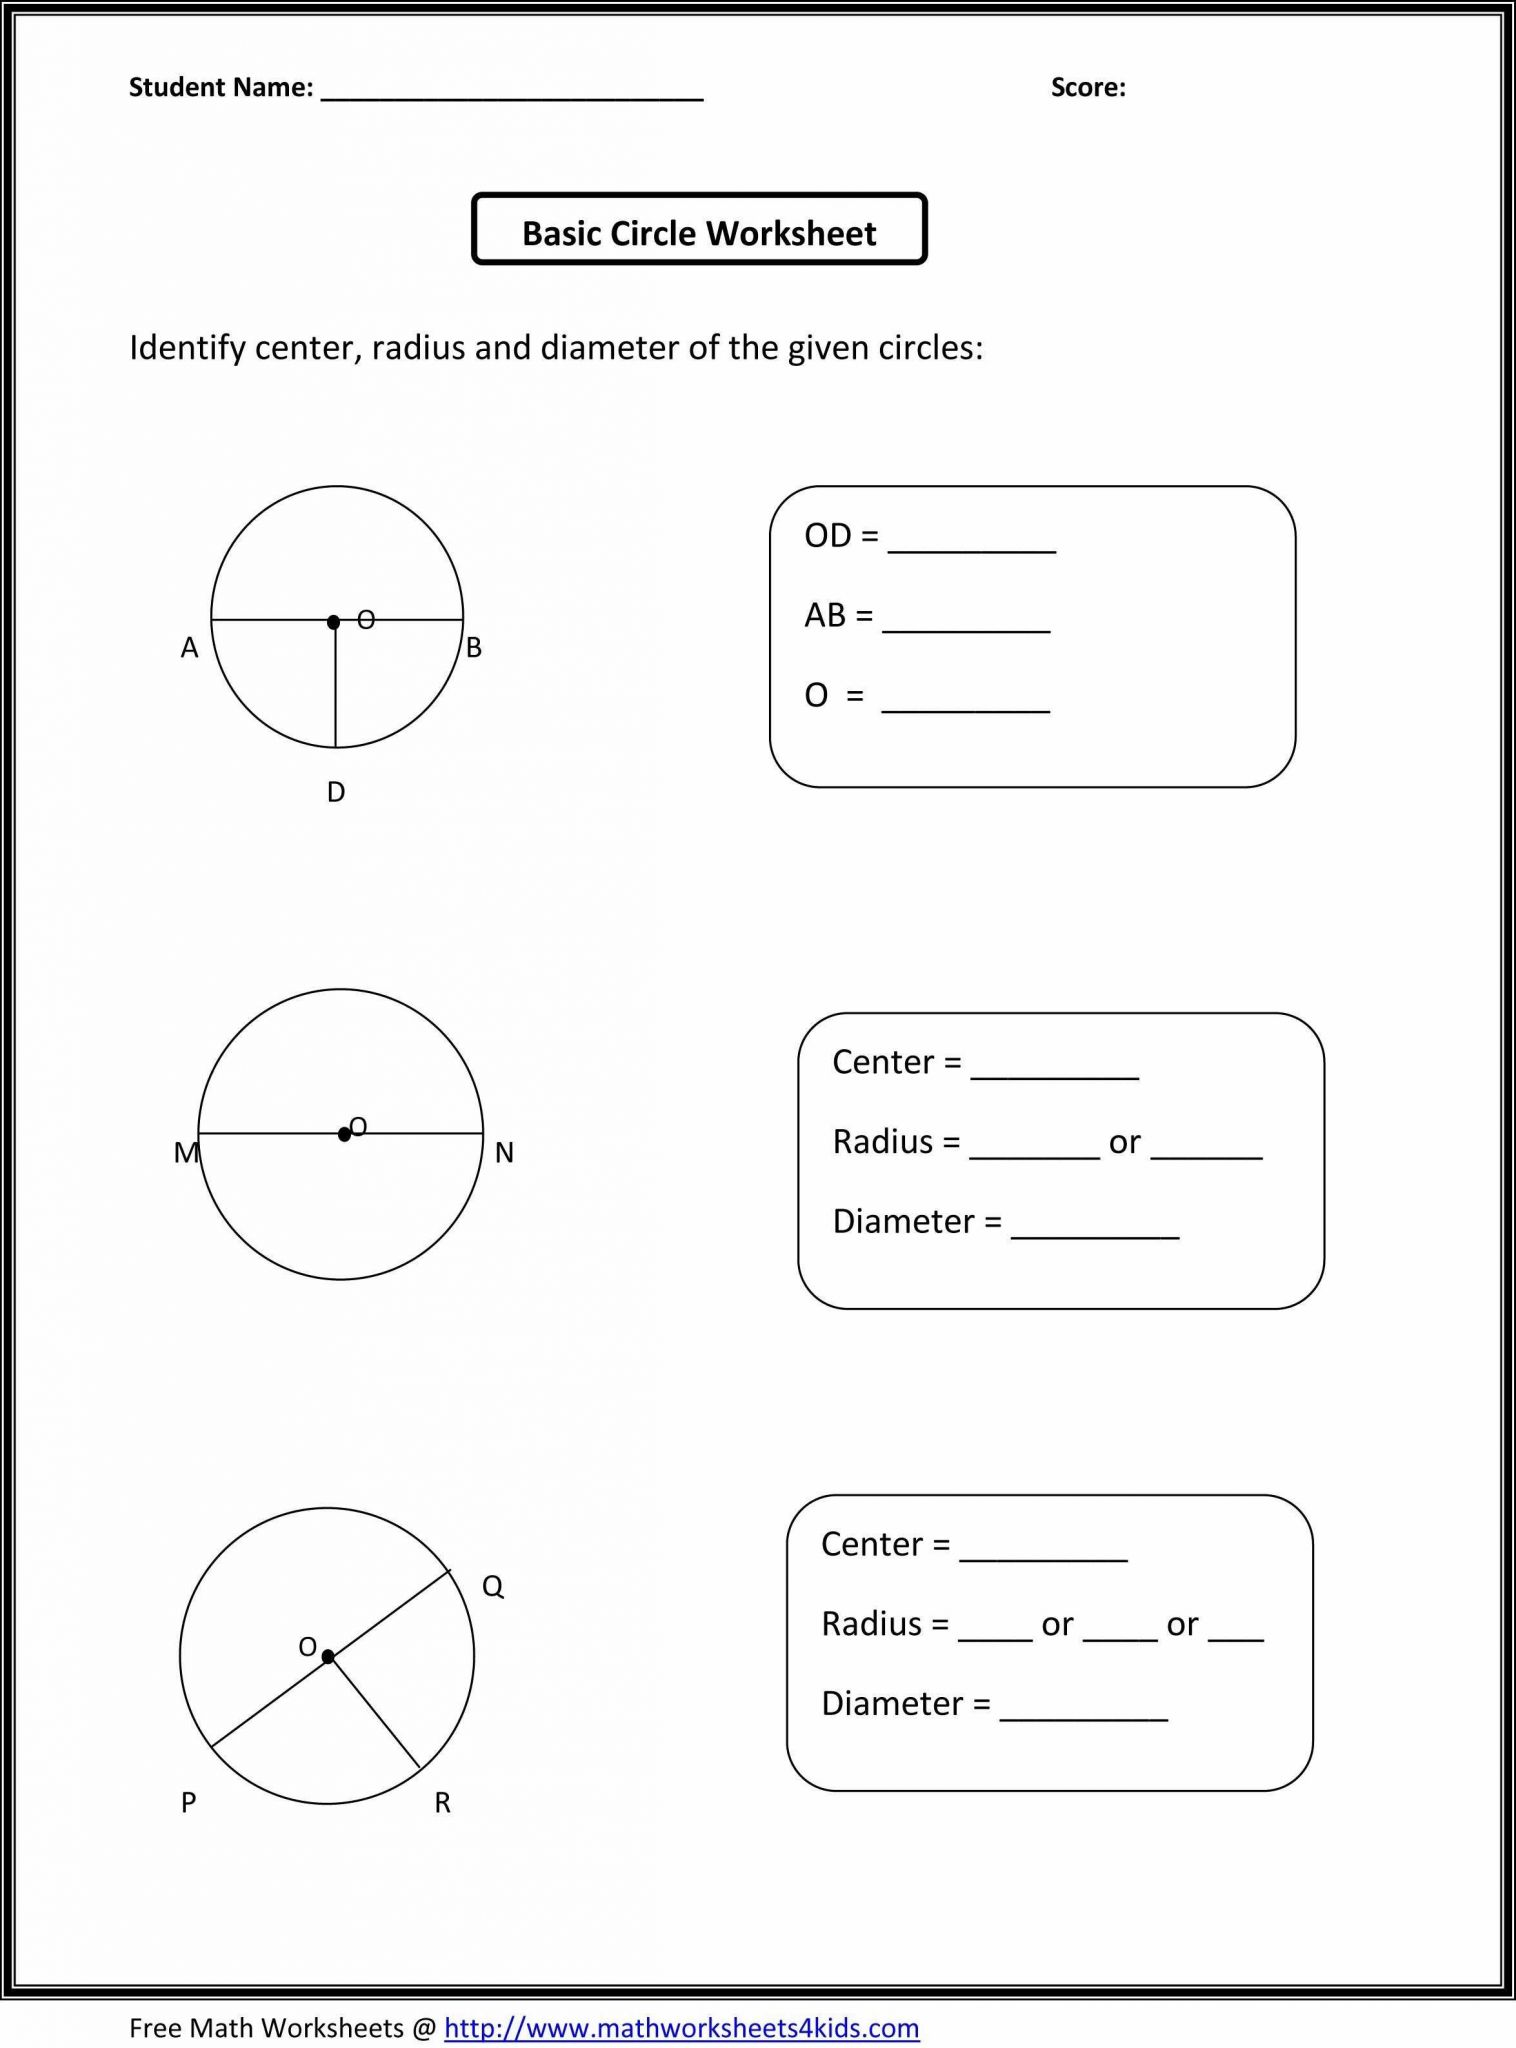 Solving Systems Of Equations By Elimination Worksheet Answers With Work